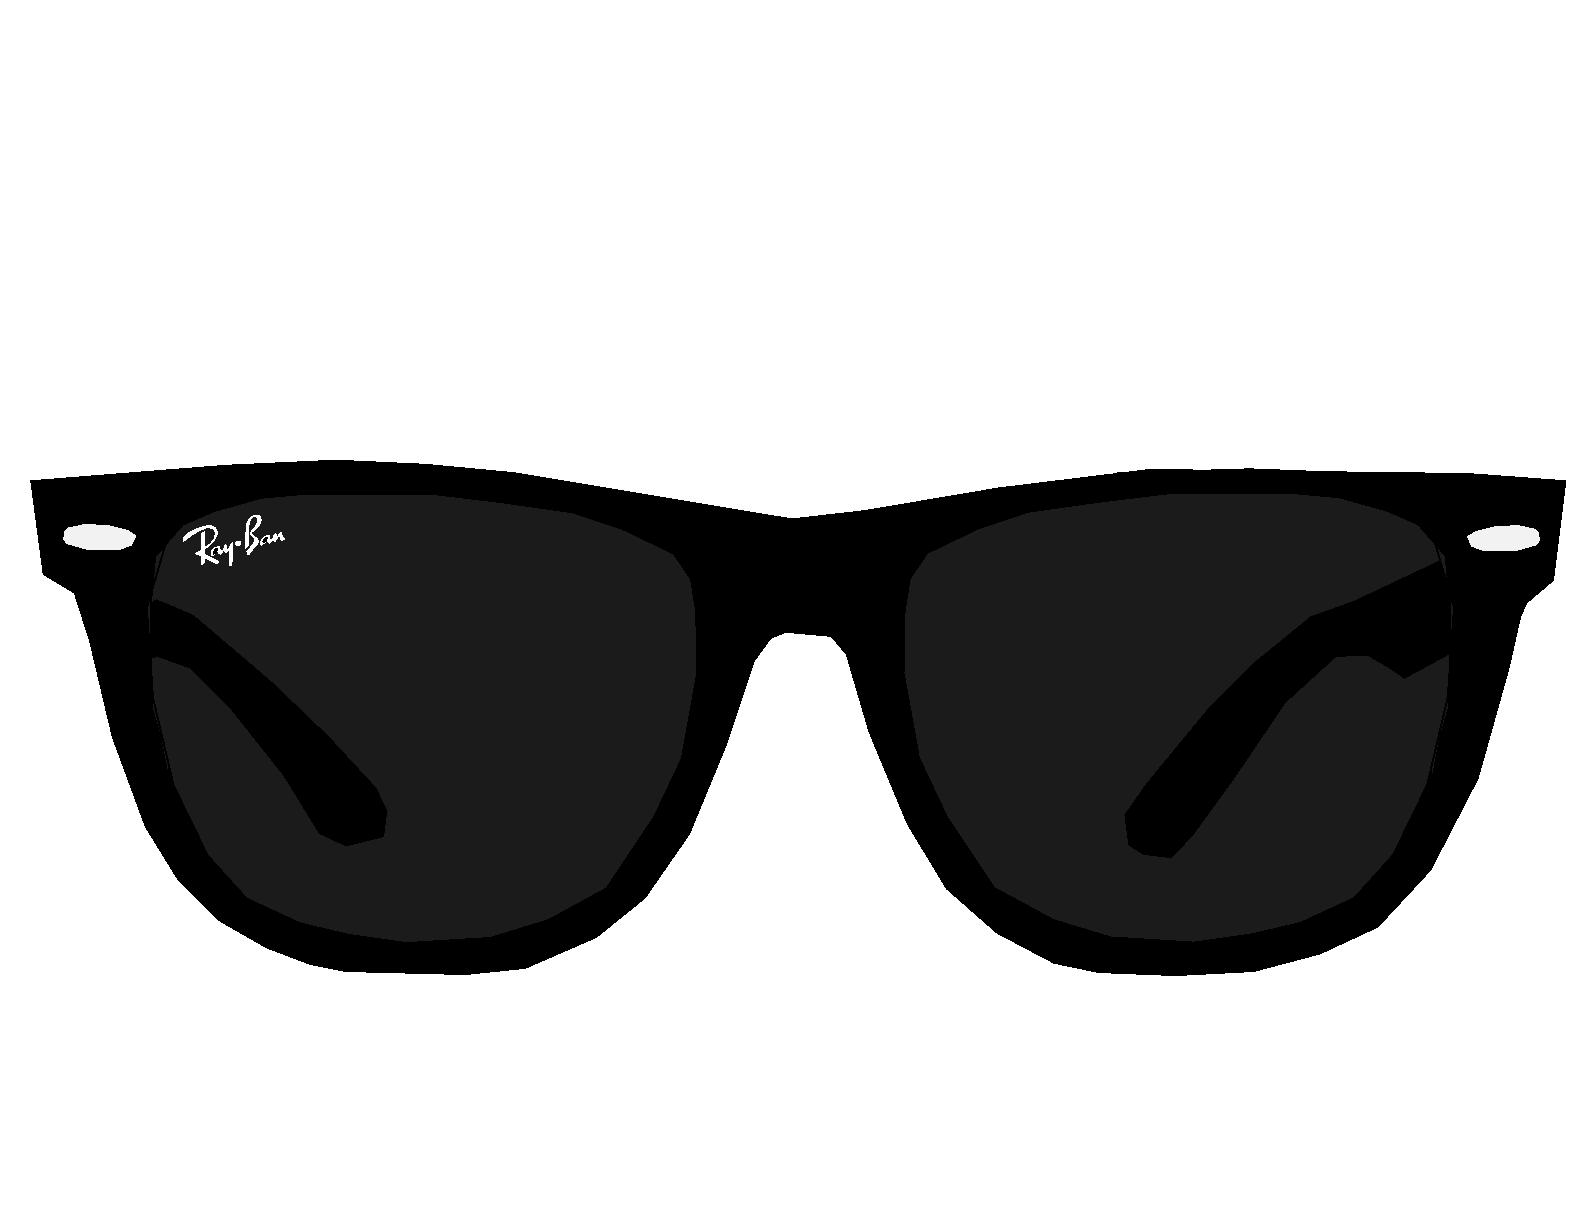 a23e80fdd8a 1584x1224 Ray Ban For Men Image Cartoon Pictures Heritage Malta